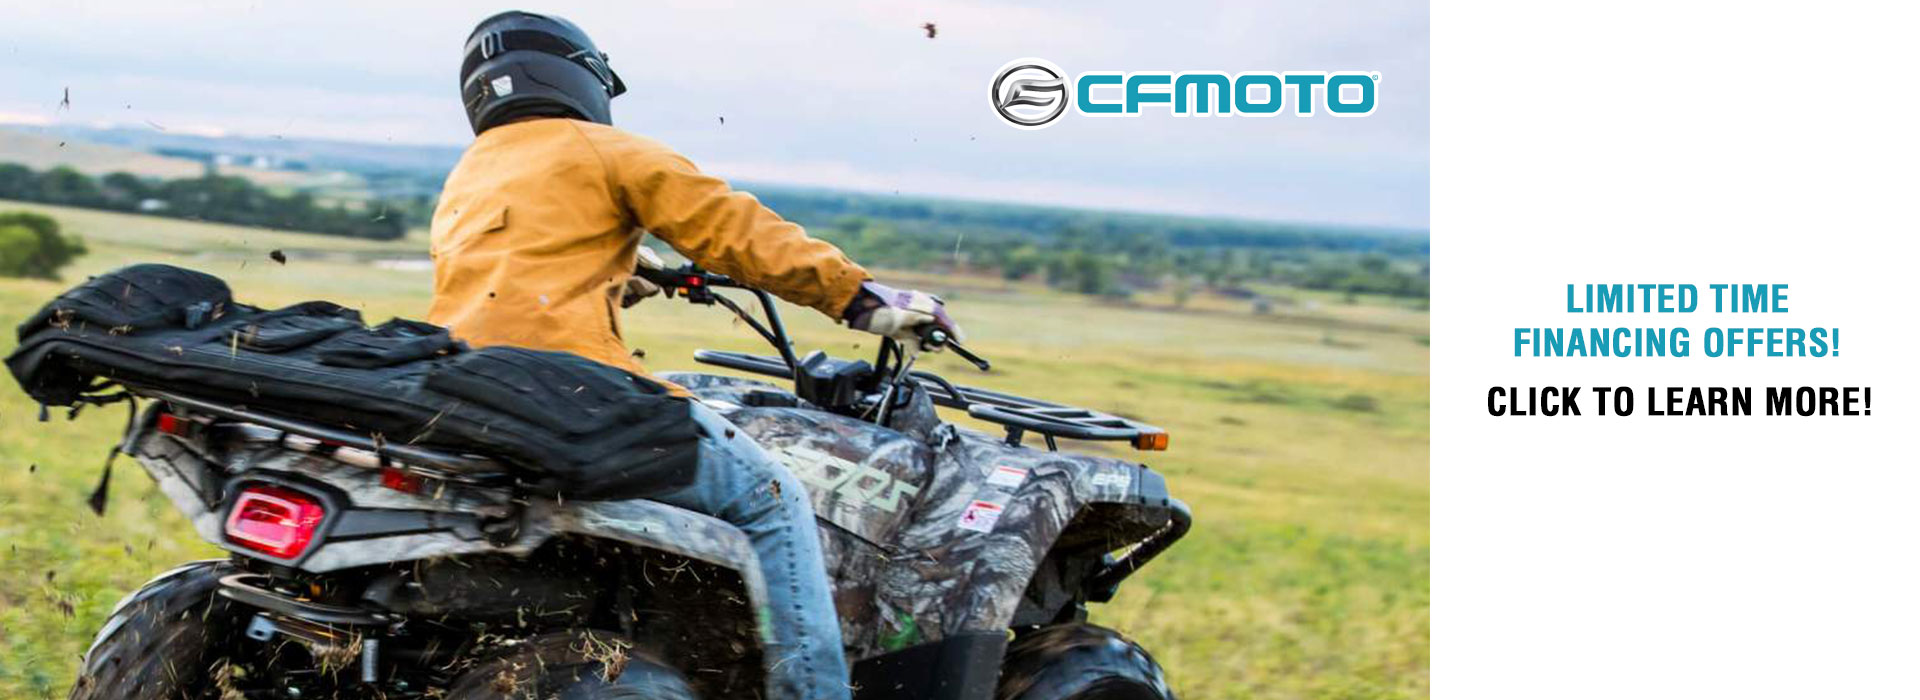 CFMOTO Limited Time Financing Offers at Randy's Cycle